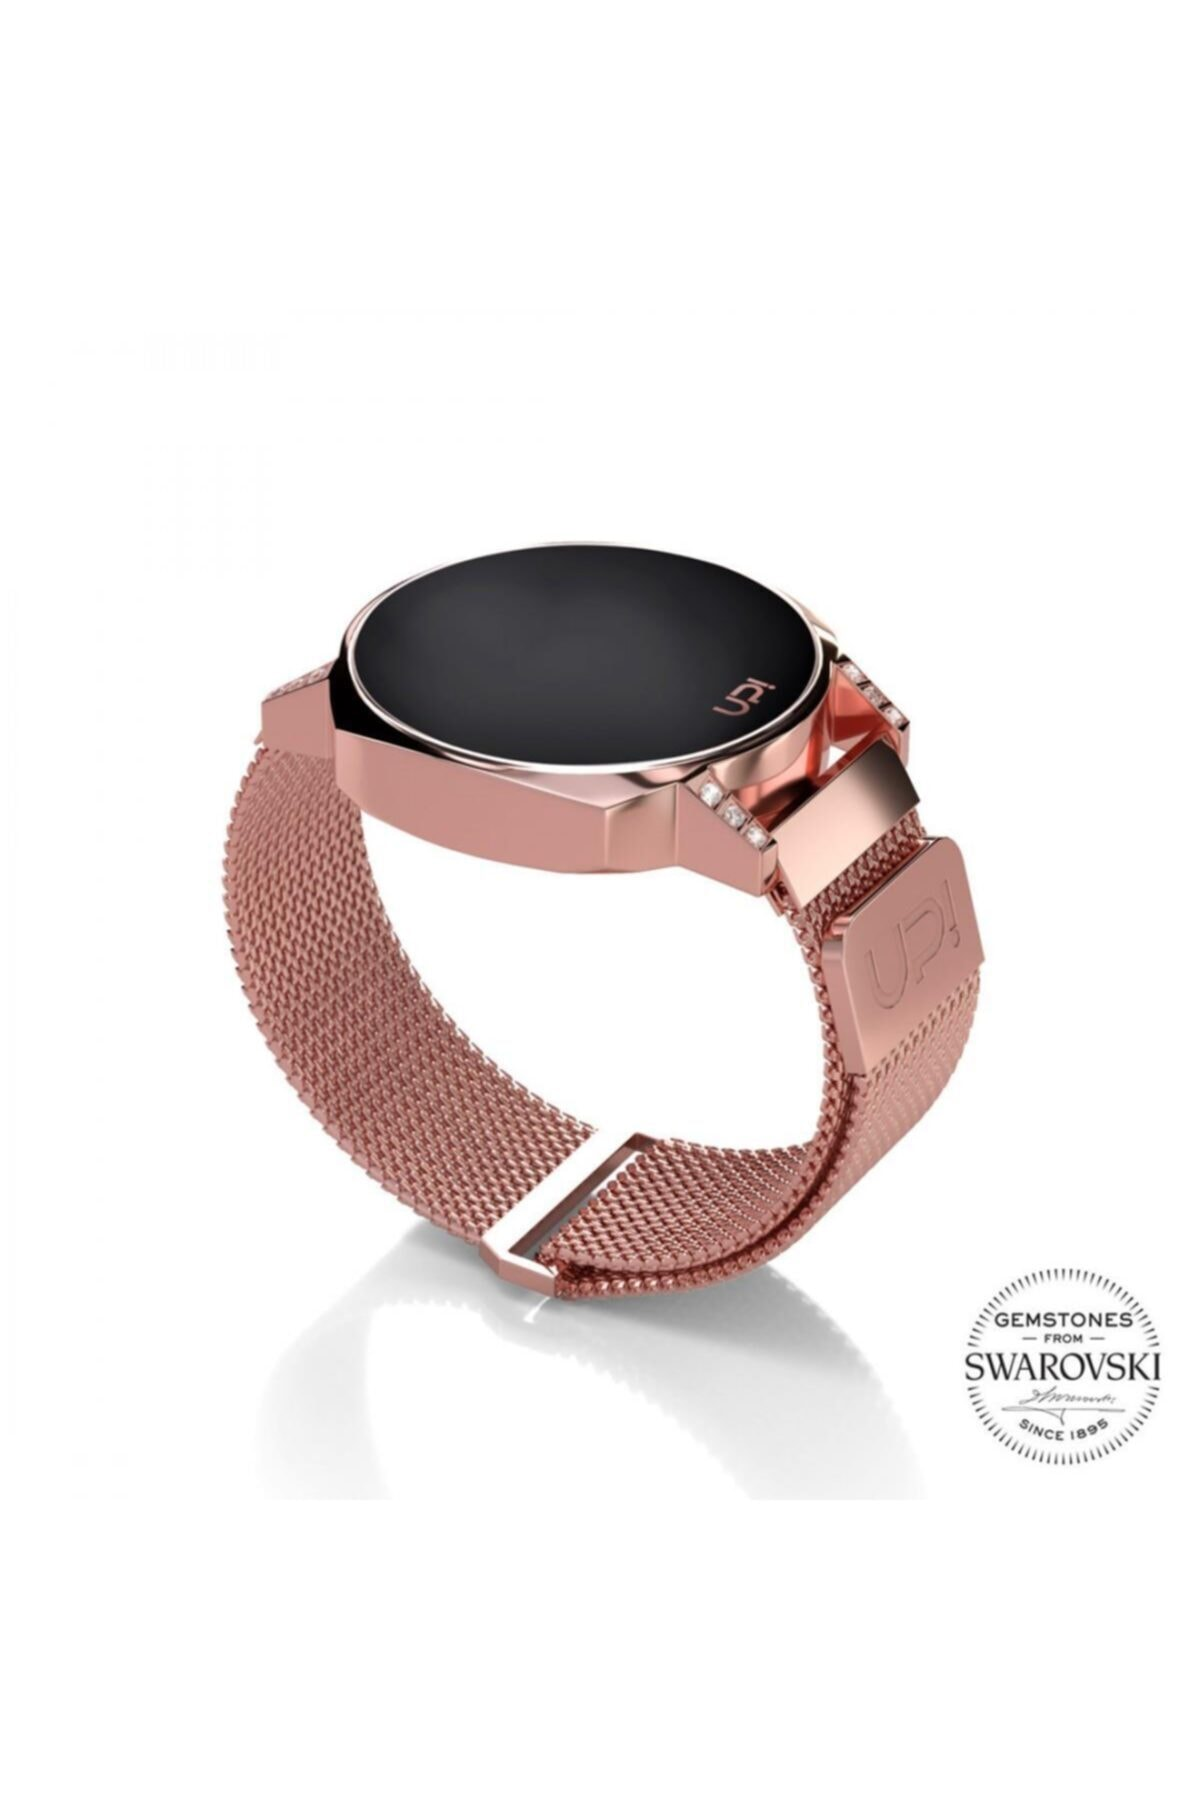 Up! Watch Upwatch 1764 Next Mini Rose Gold Swarovski Topaz 1